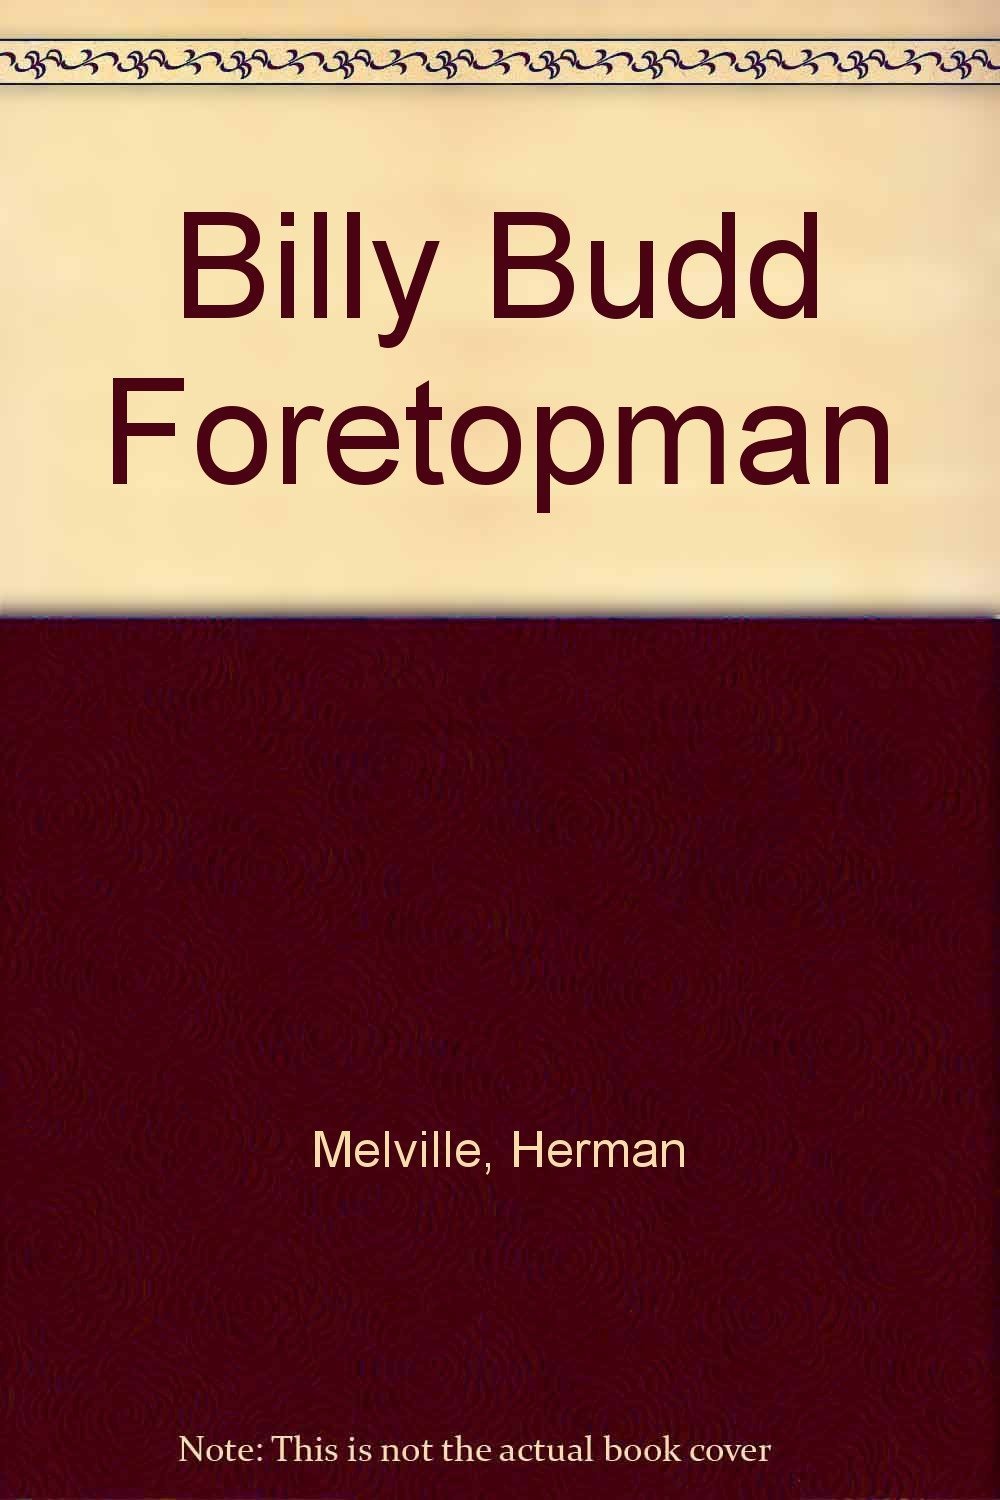 billy budd herman melville essay Herman melville's billy budd: analysis in the novel, billy budd, by herman melville, captain vere is the tragic hero he is neither good nor evil, but rather a man whose concept of order, discipline, and legality forces him to obey the codes of an authority higher than himself even though he may be in personal disagreement.